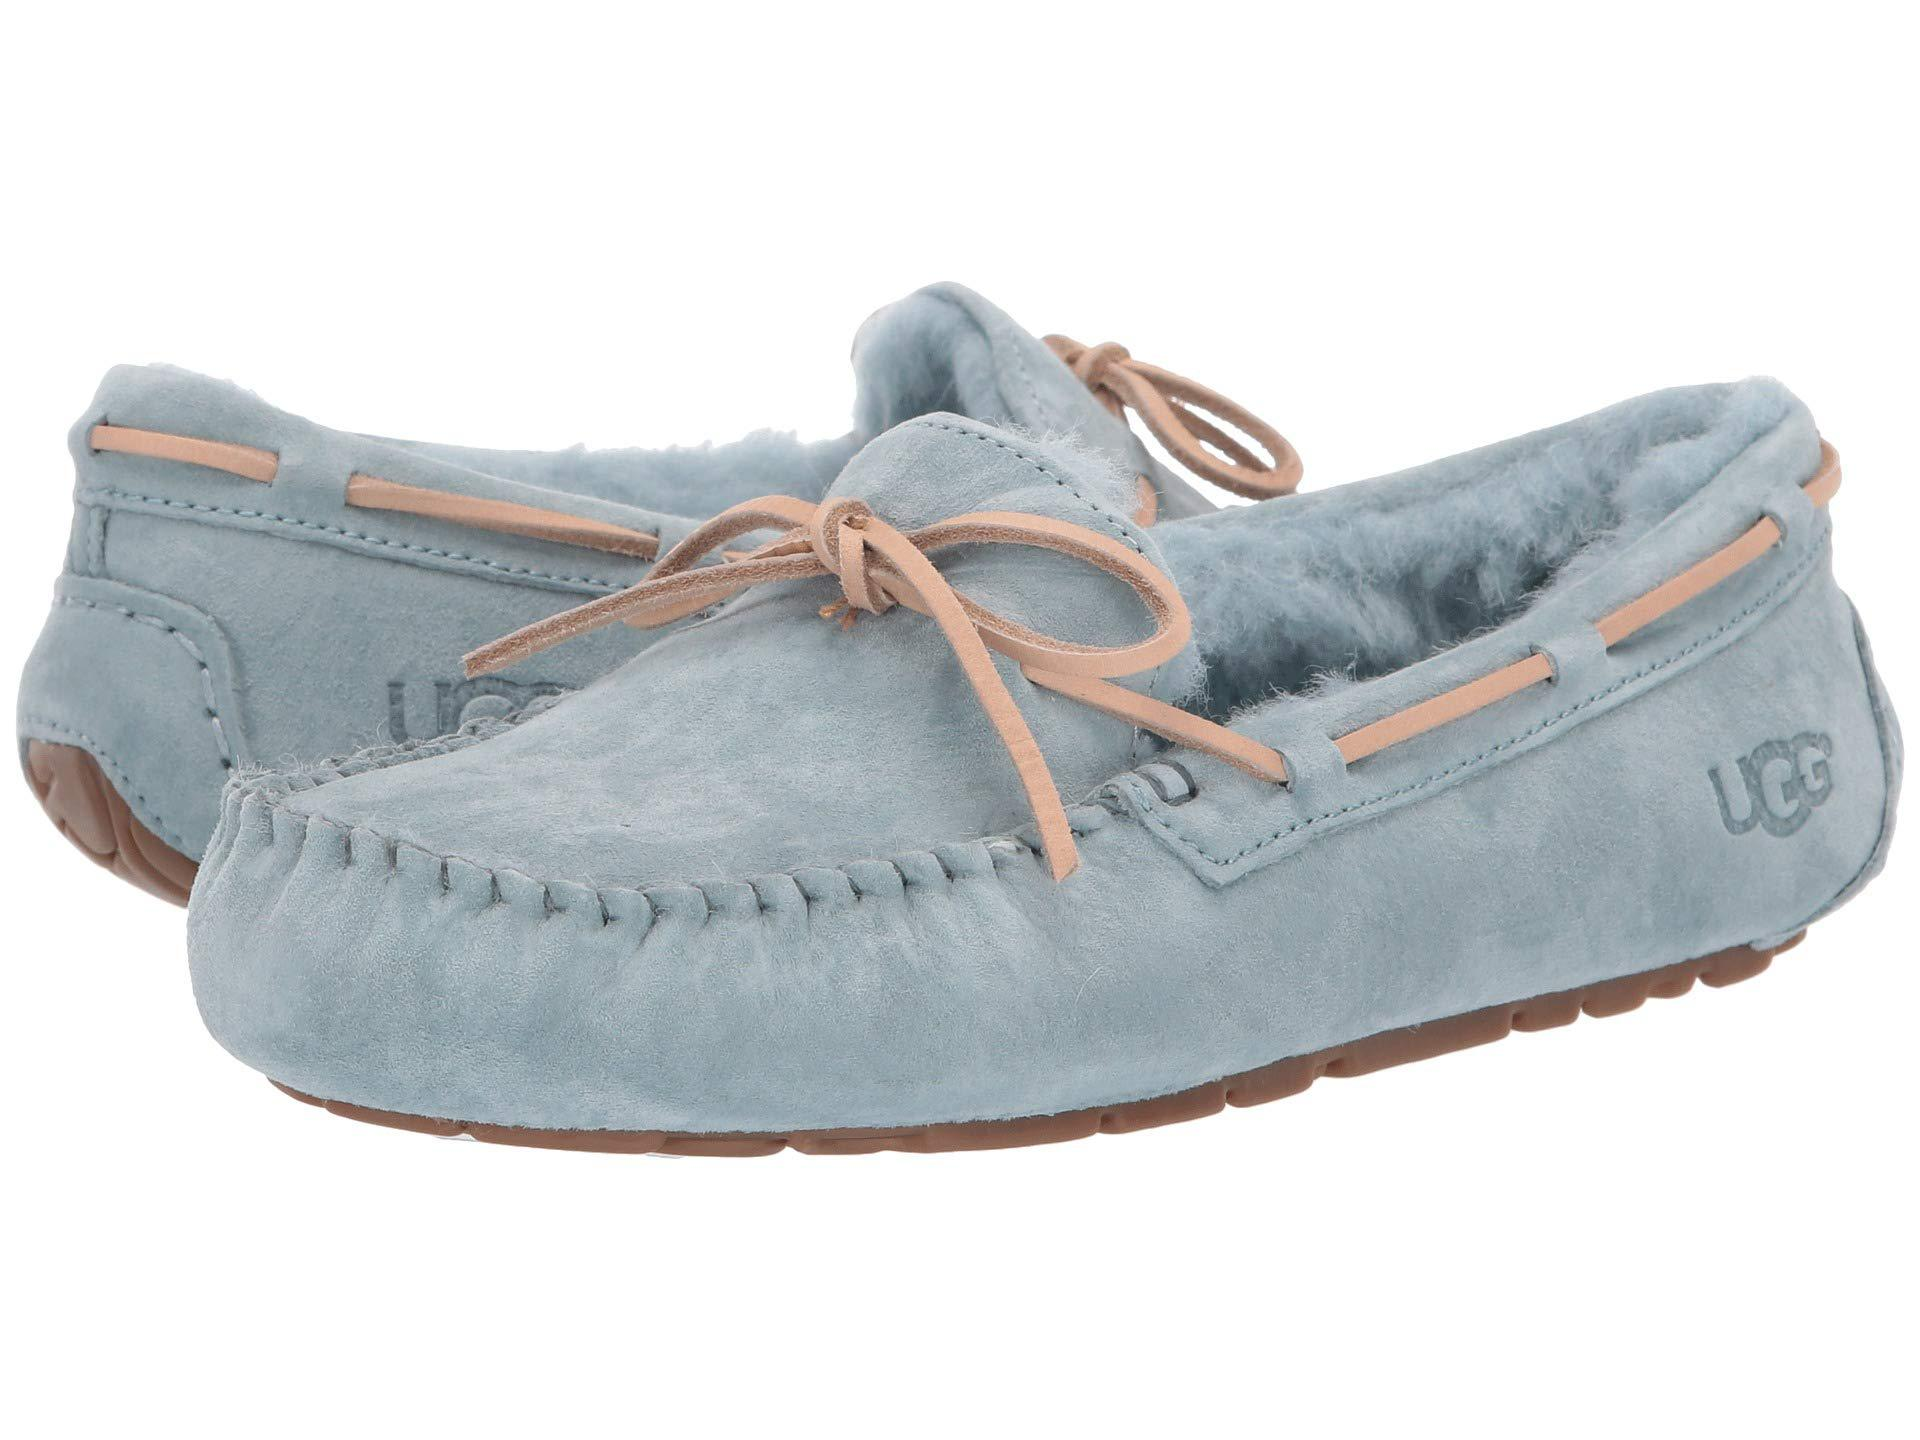 7ace3517e7a Blue Dakota (black Suede) Women's Moccasin Shoes